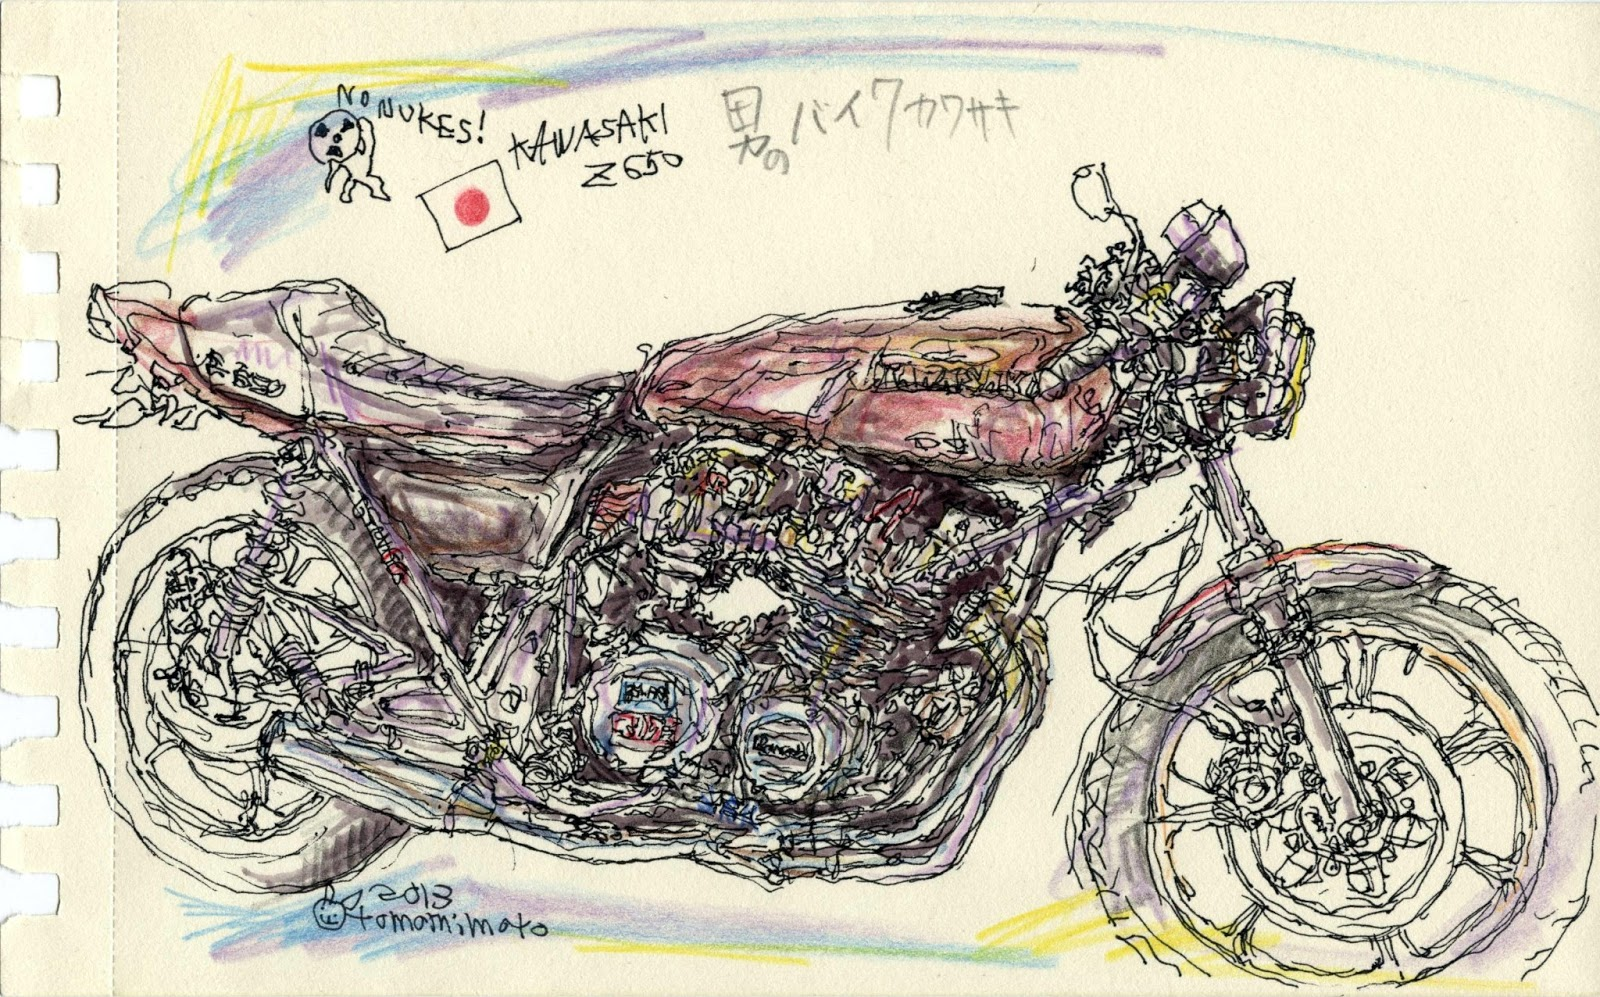 kawasaki z650 drawing